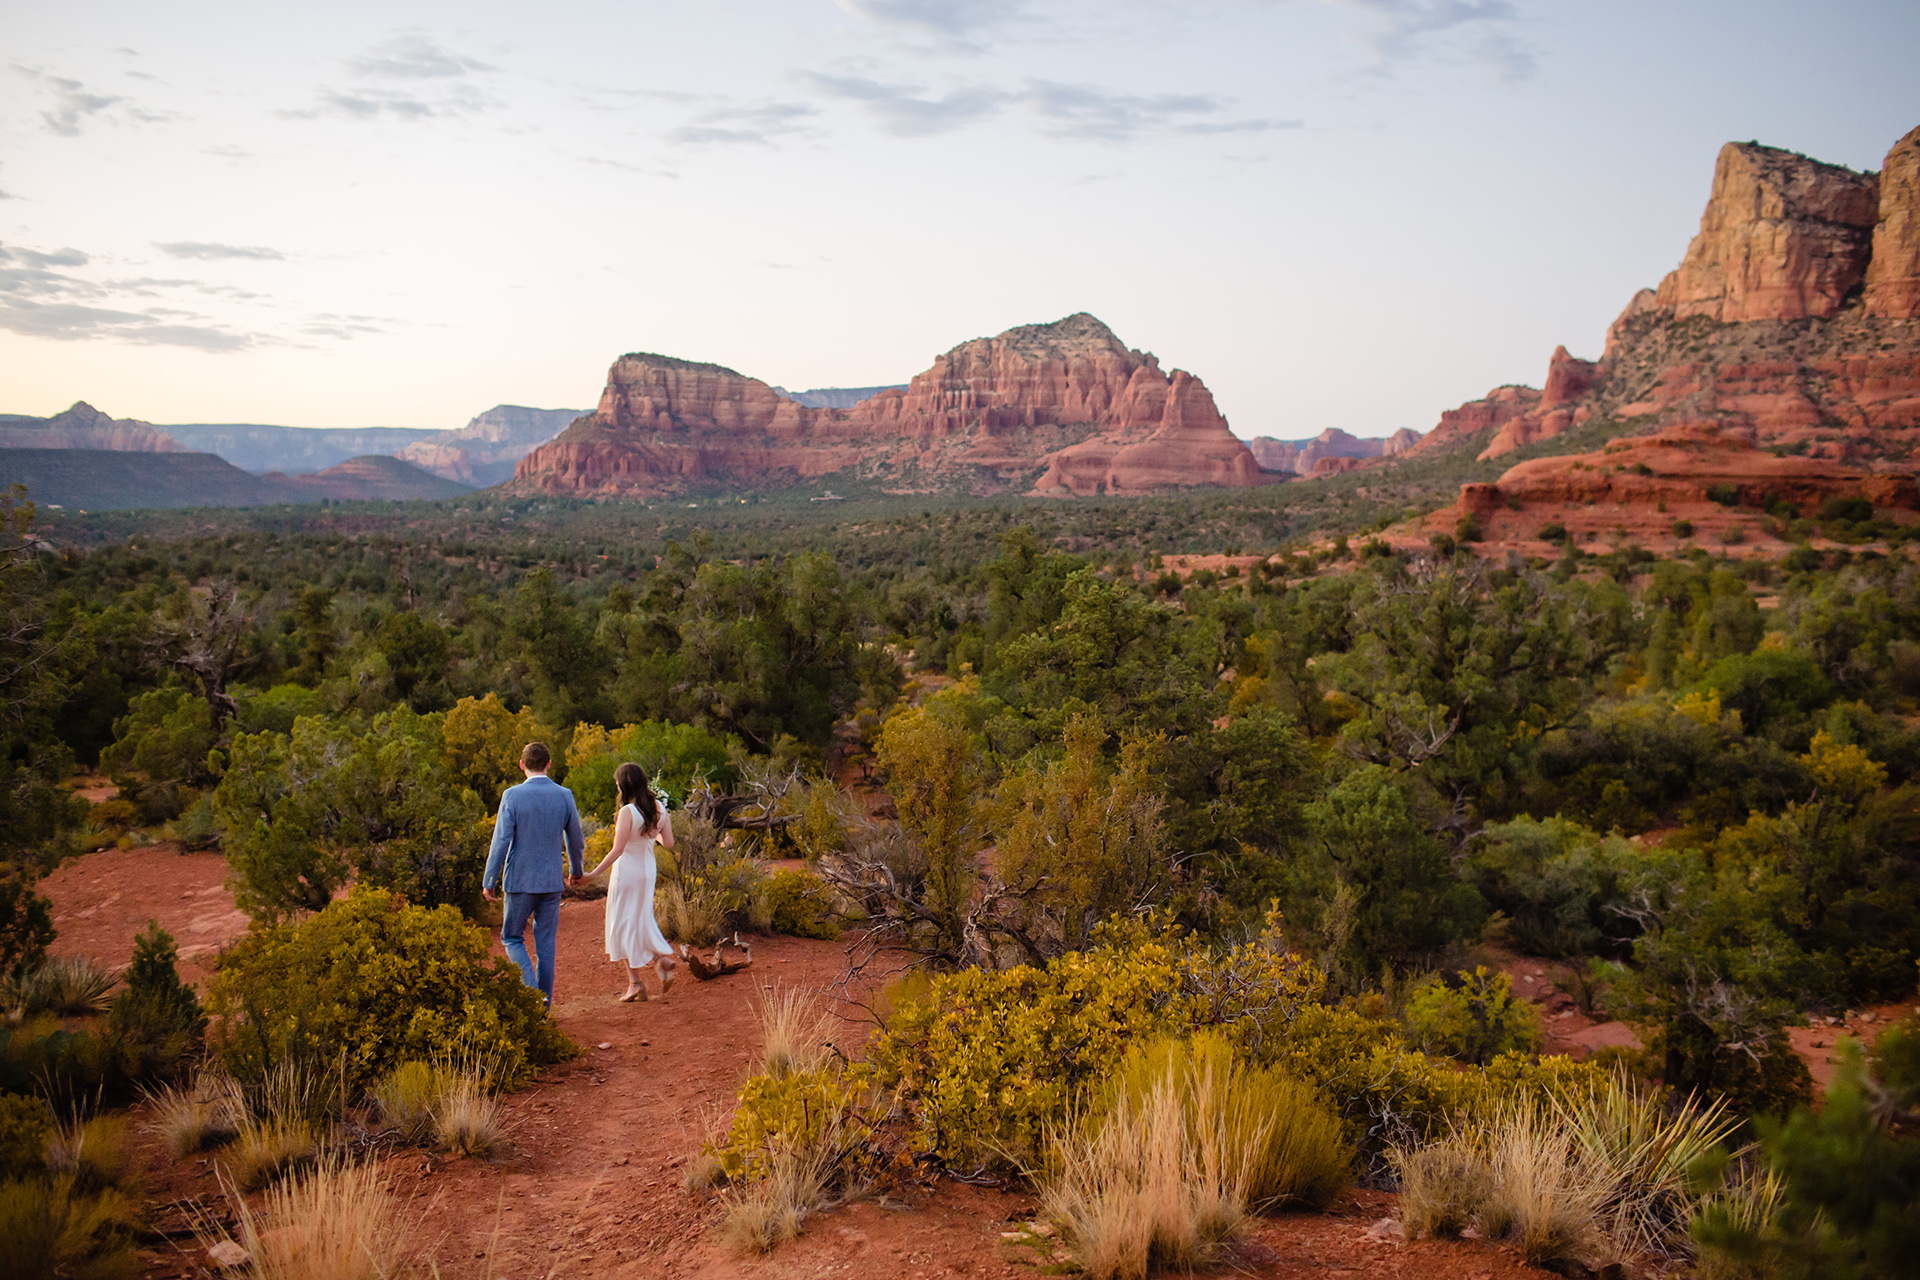 Sedona AZ Wedding Photographer | The bride and groom share a quiet moment together as they walk back down the trail